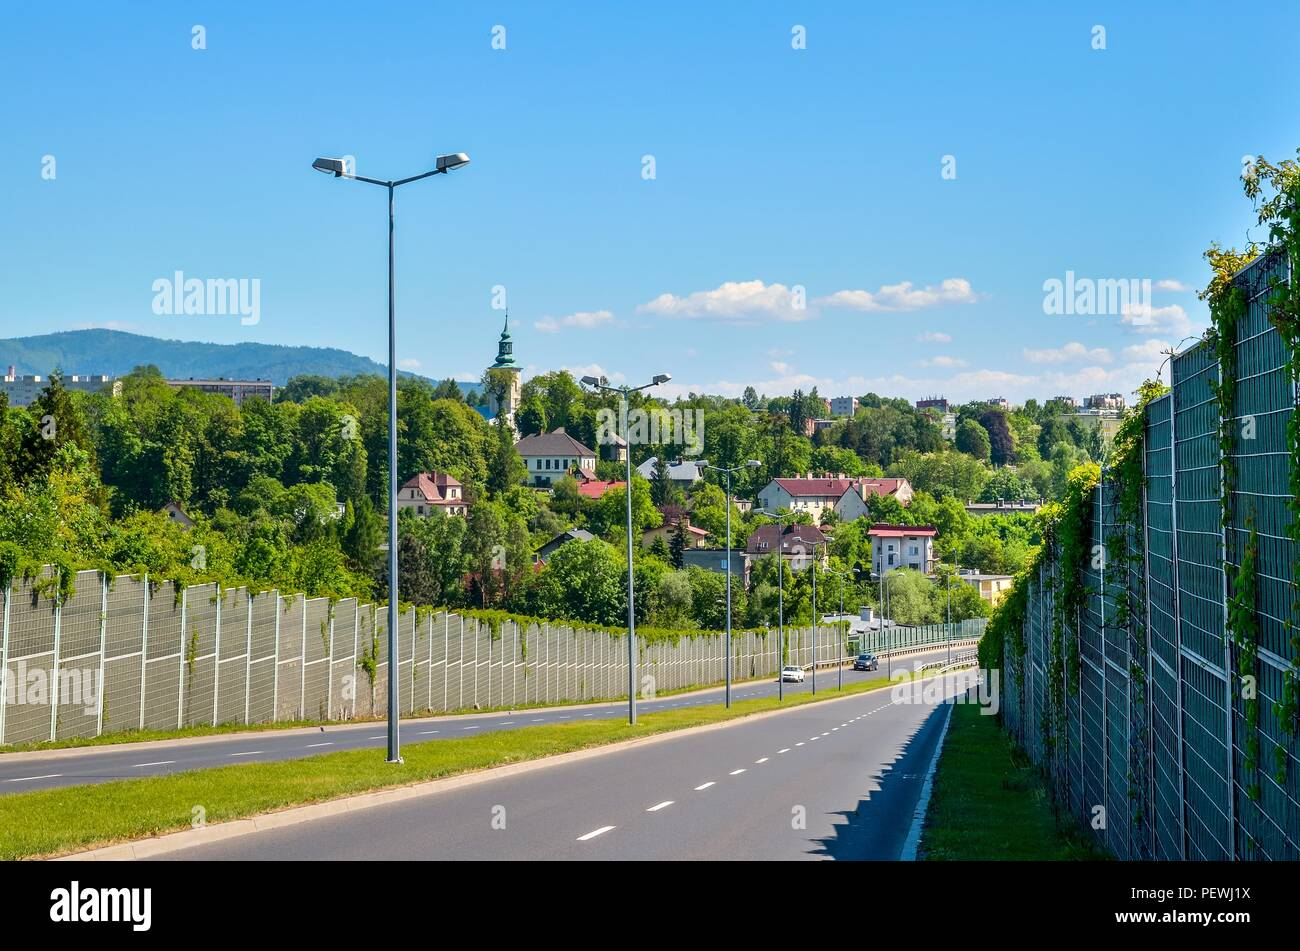 Beautiful urban landscape. View of the city of Bielsko-Biala in Poland. - Stock Image